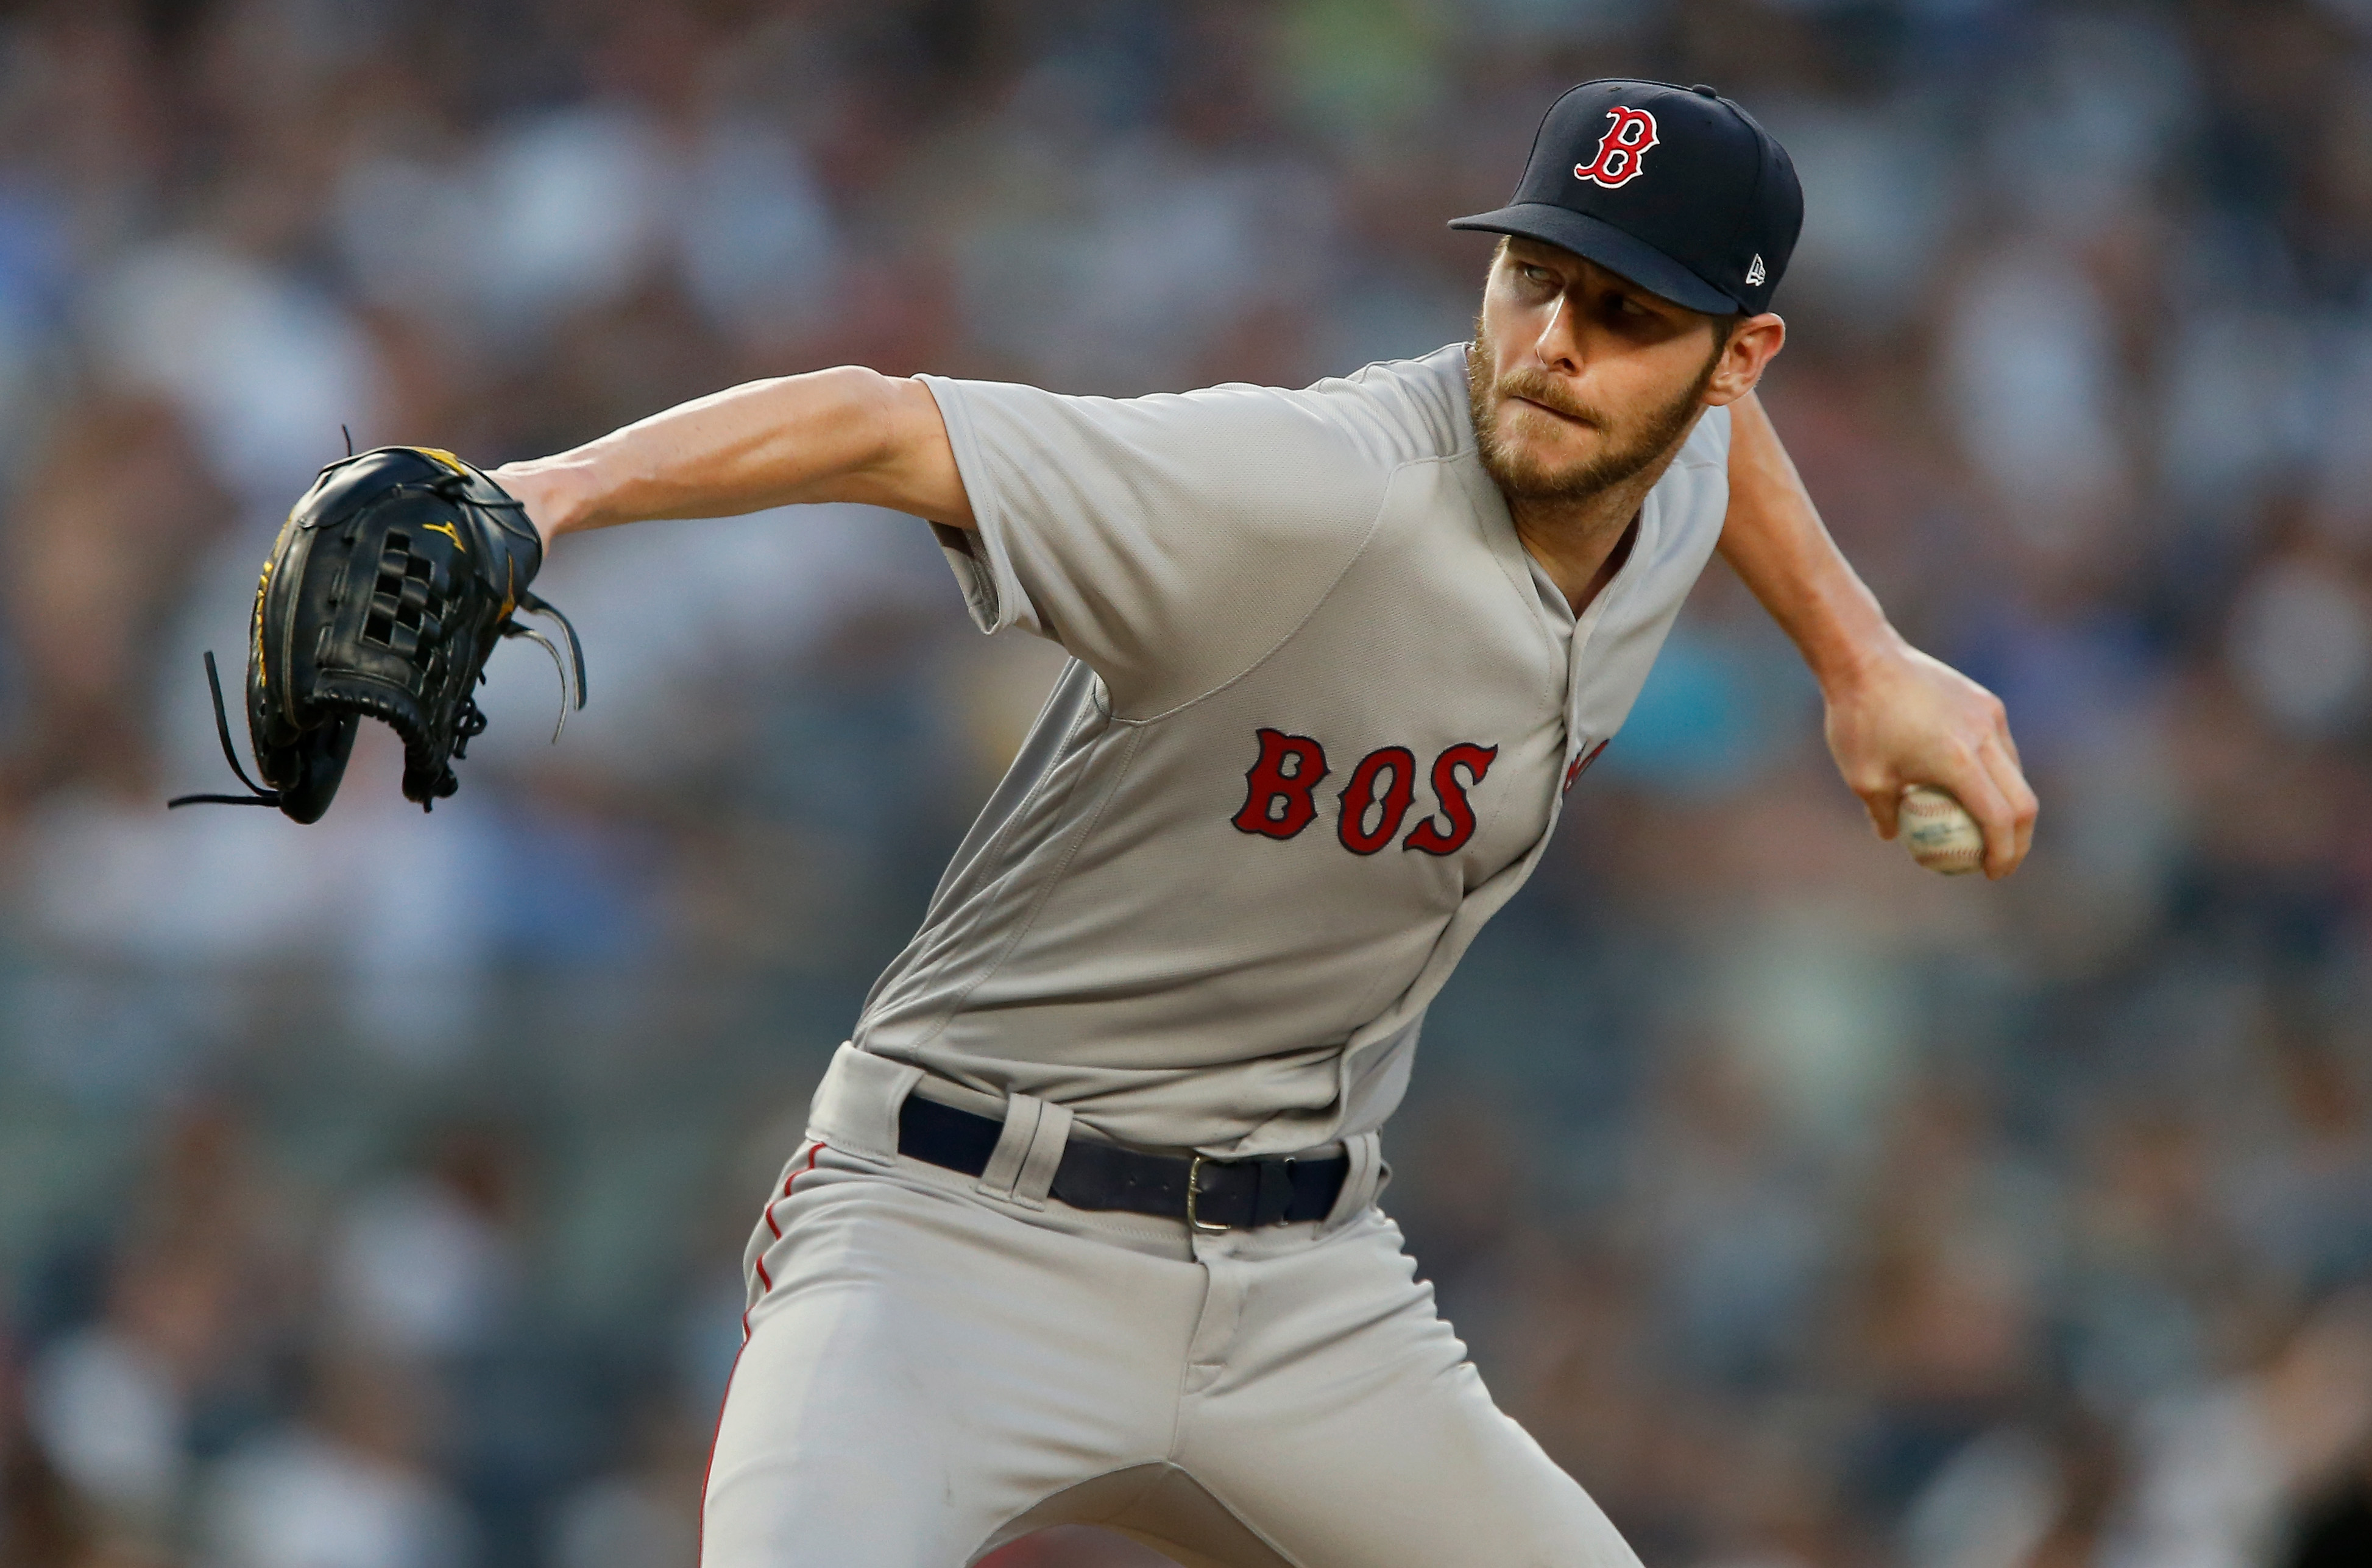 c616a0ef4b9d8 Chris Sale shut down the Yankees on a hot night in the Bronx - The ...